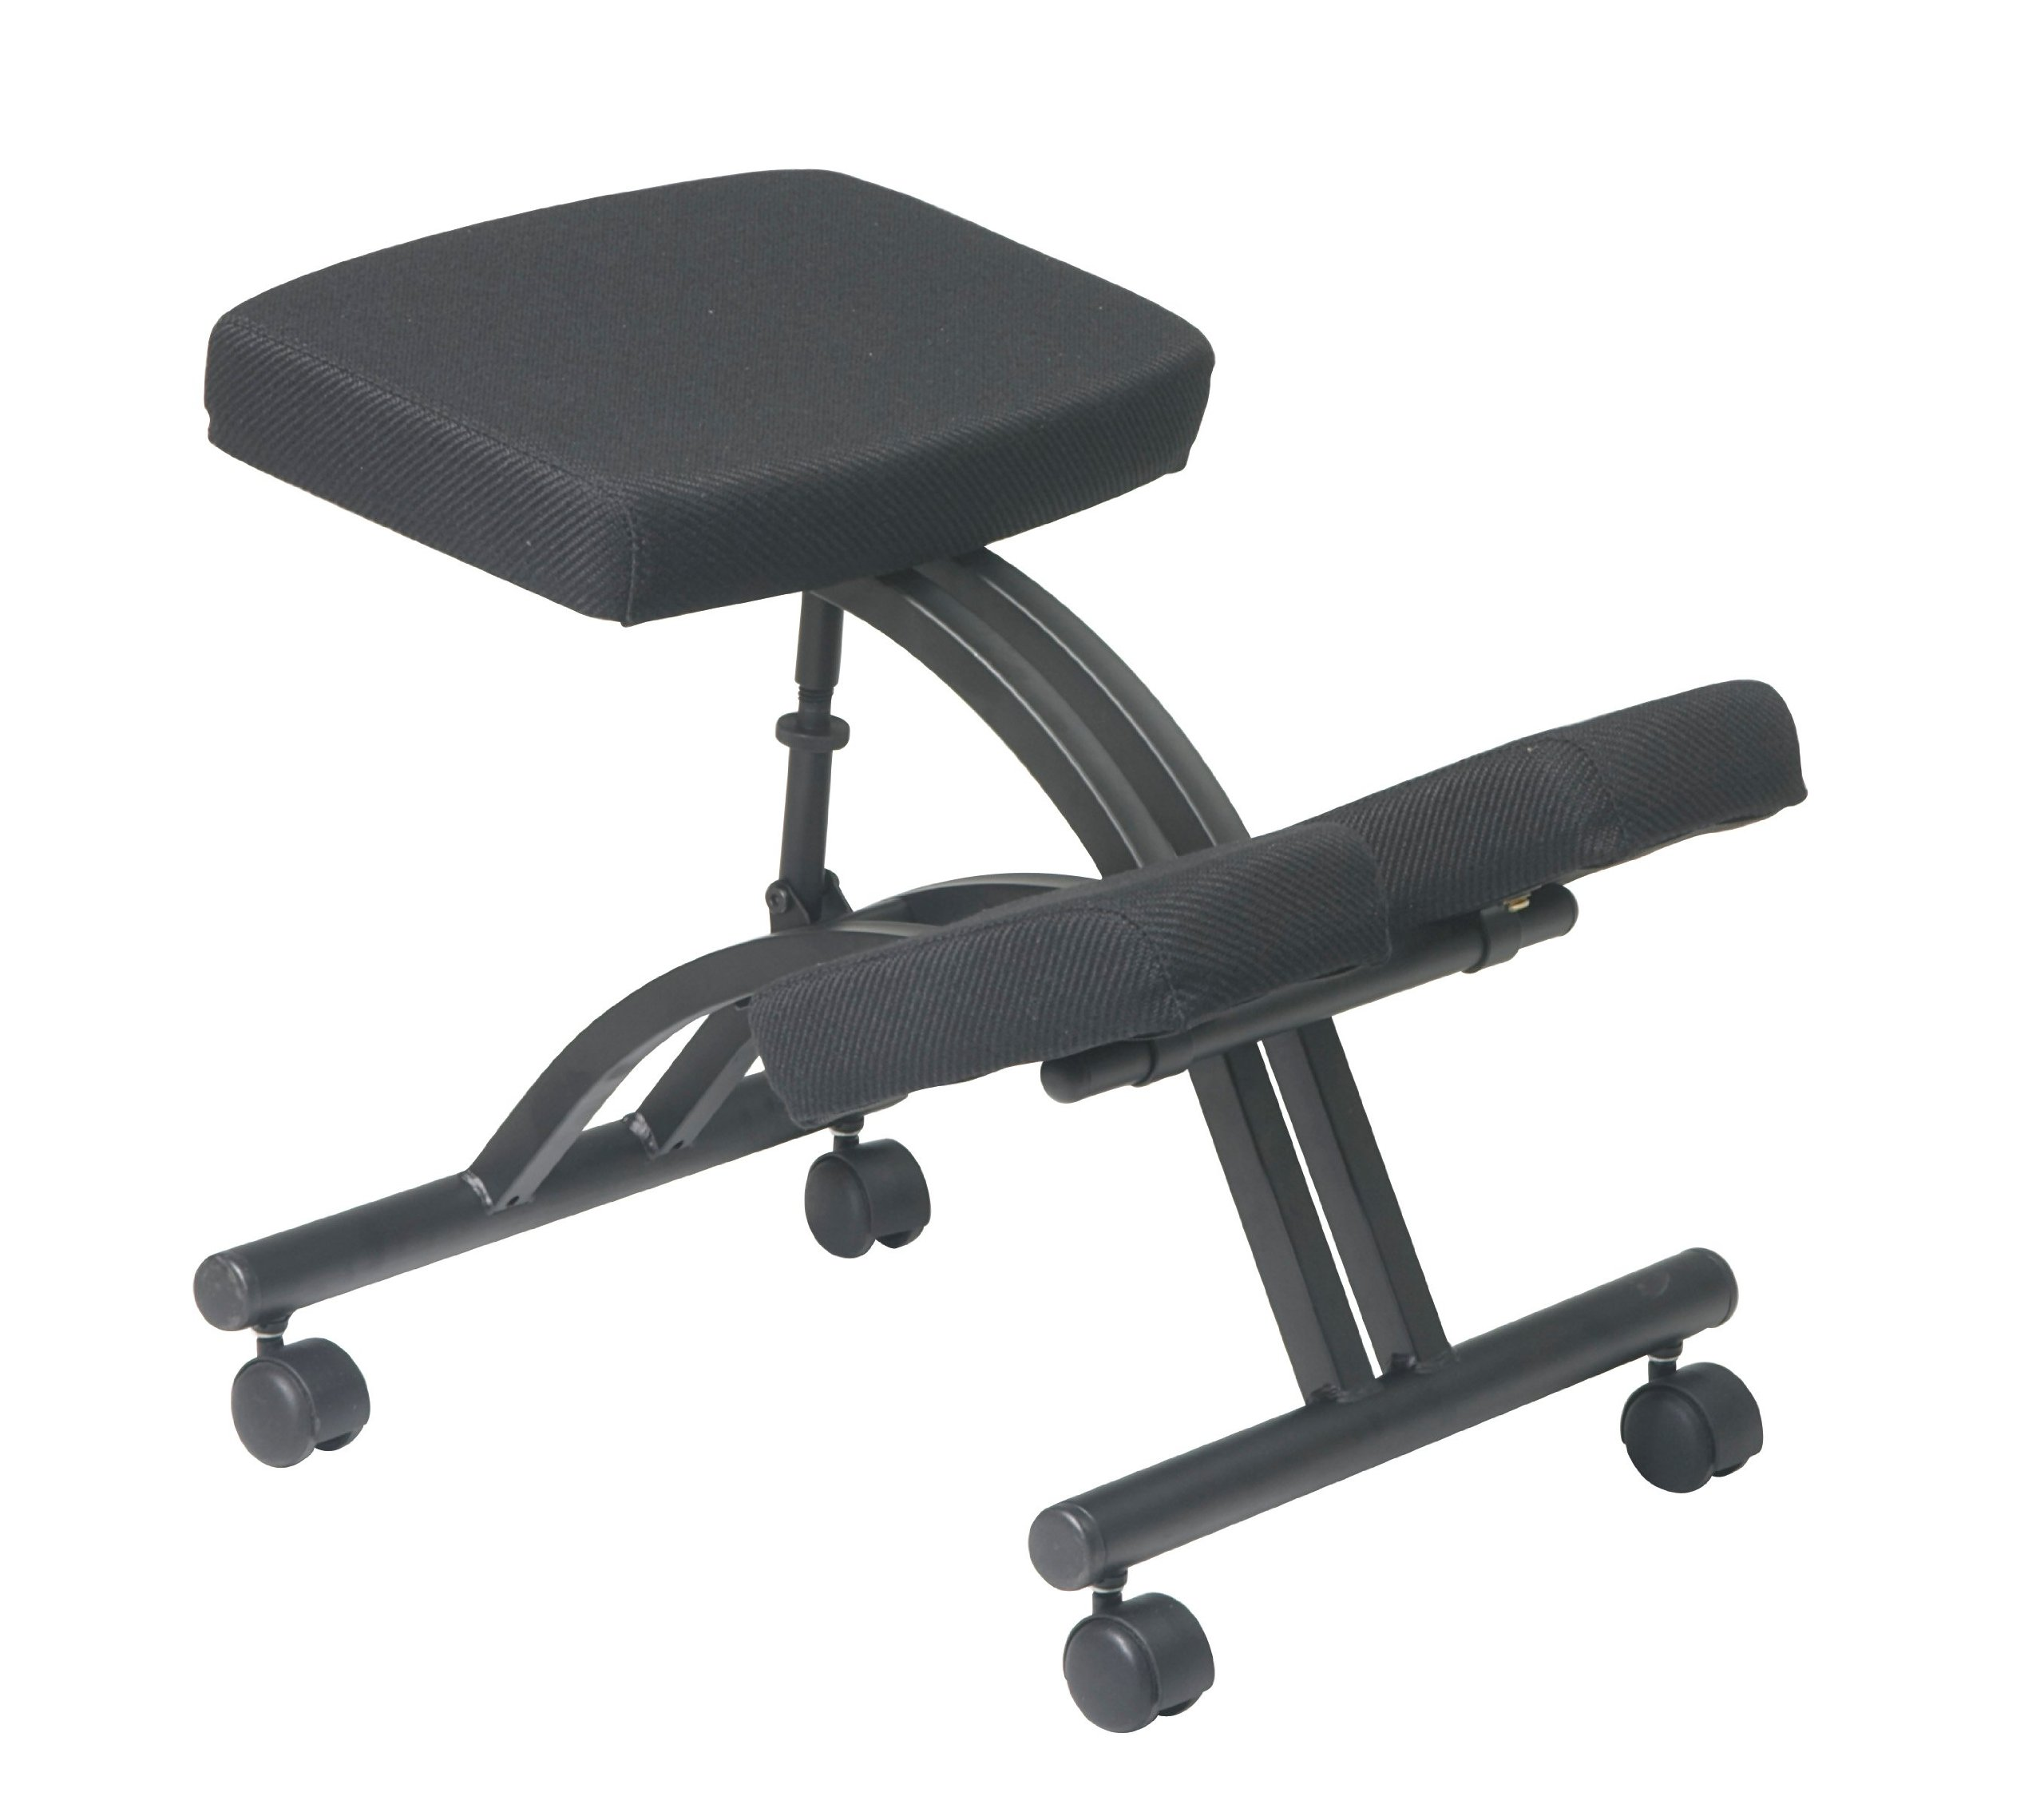 Office Star Ergonomically Designed Knee Chair with Casters, Memory Foam and Black Metal Base Black by Office Star